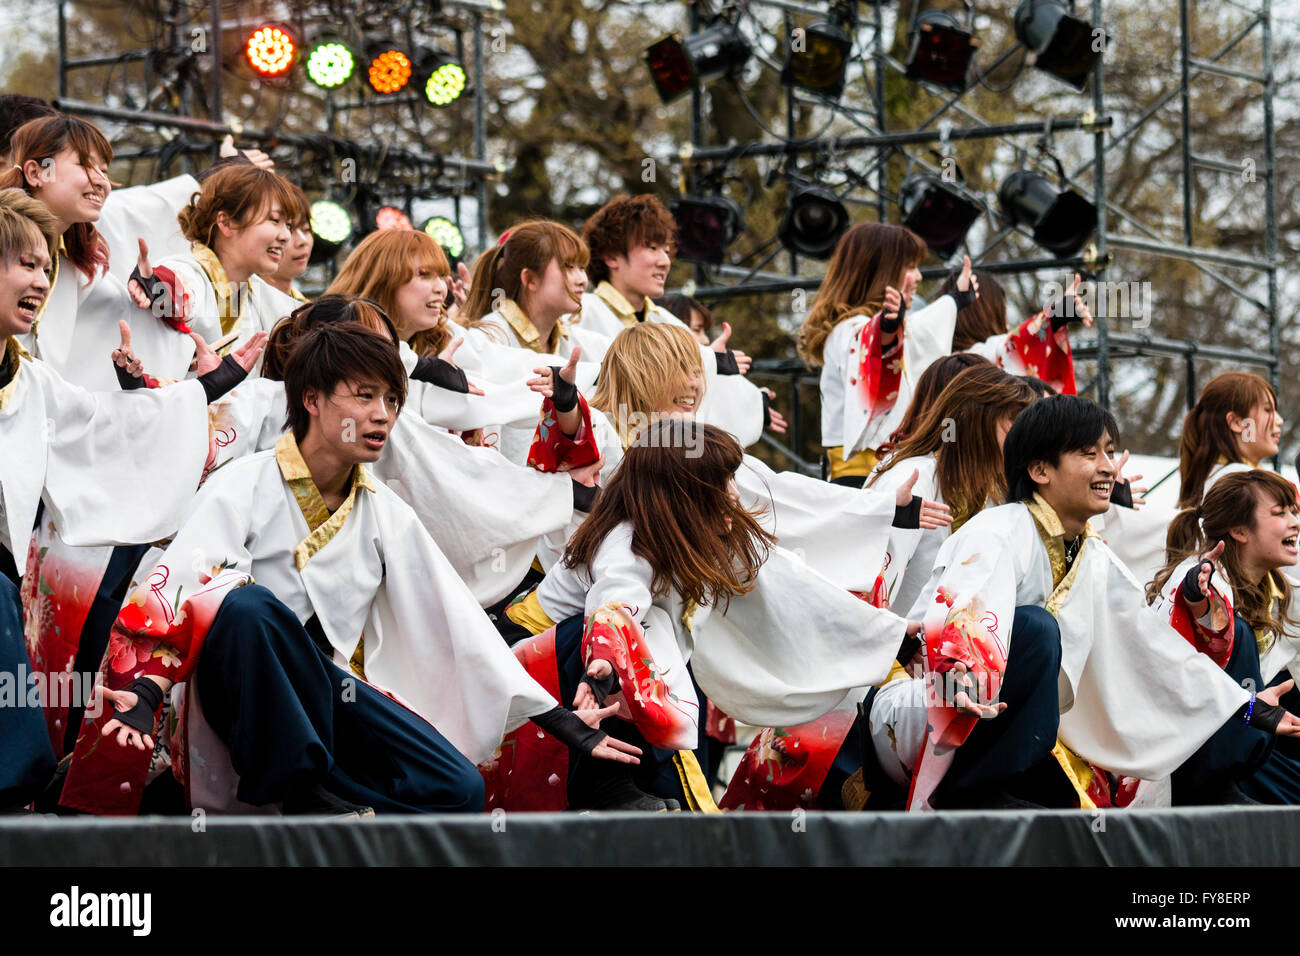 Yosakoi dance festival. Dancing troupe of your men and women dressed in yukata jackets, kneeling arms reaching out, - Stock Image